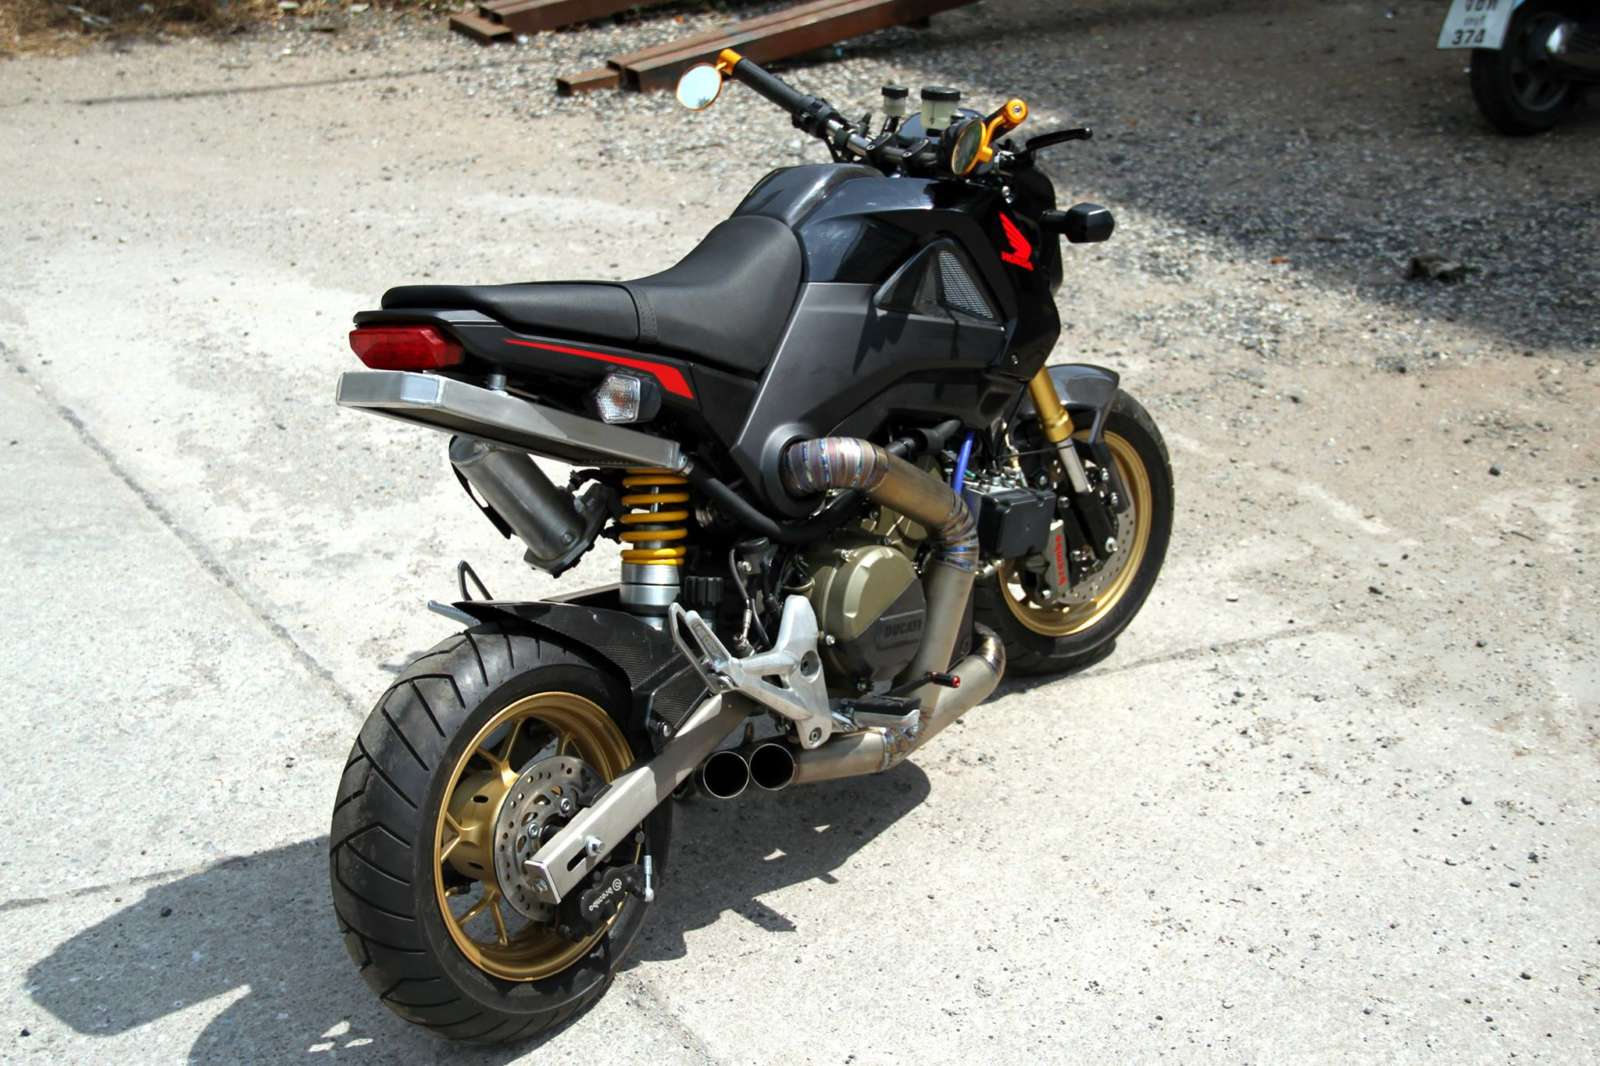 Honda Grom Build >> Video: 205 HP Honda Grom with a Ducati Panigale R engine ...